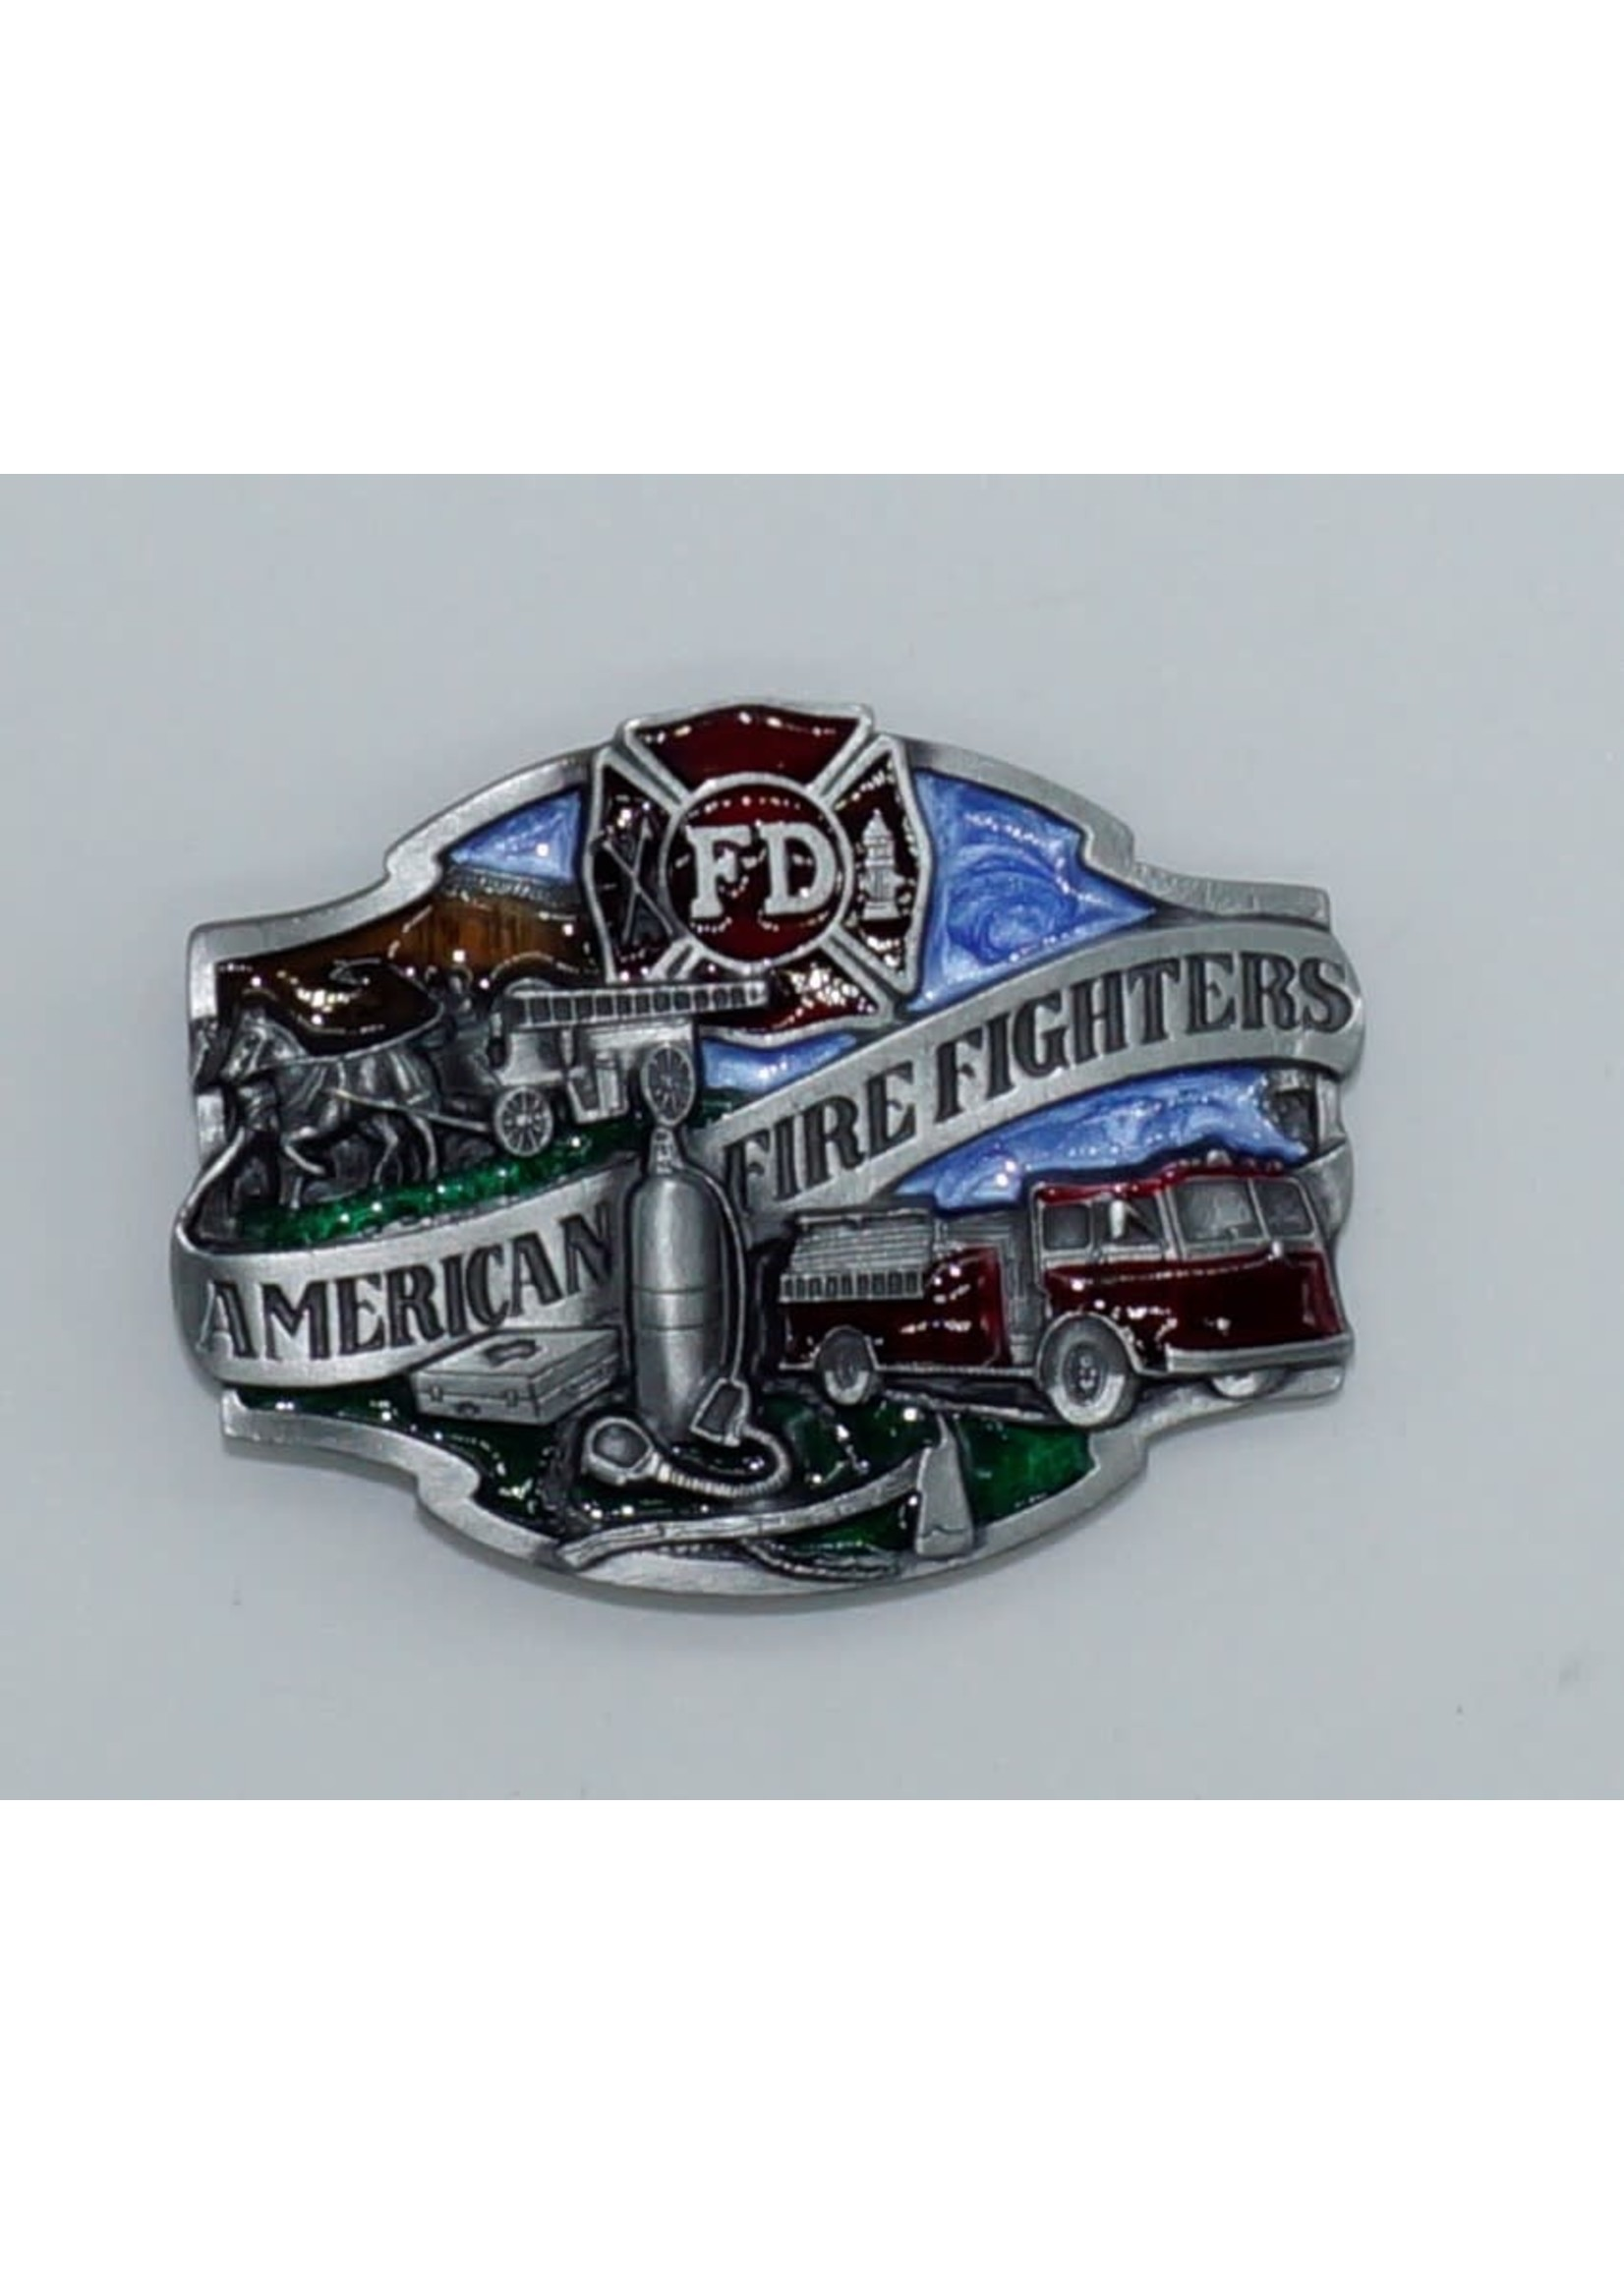 Siskiyou Gifts American Fire Fighters Enameled Belt Buckle G80E-H